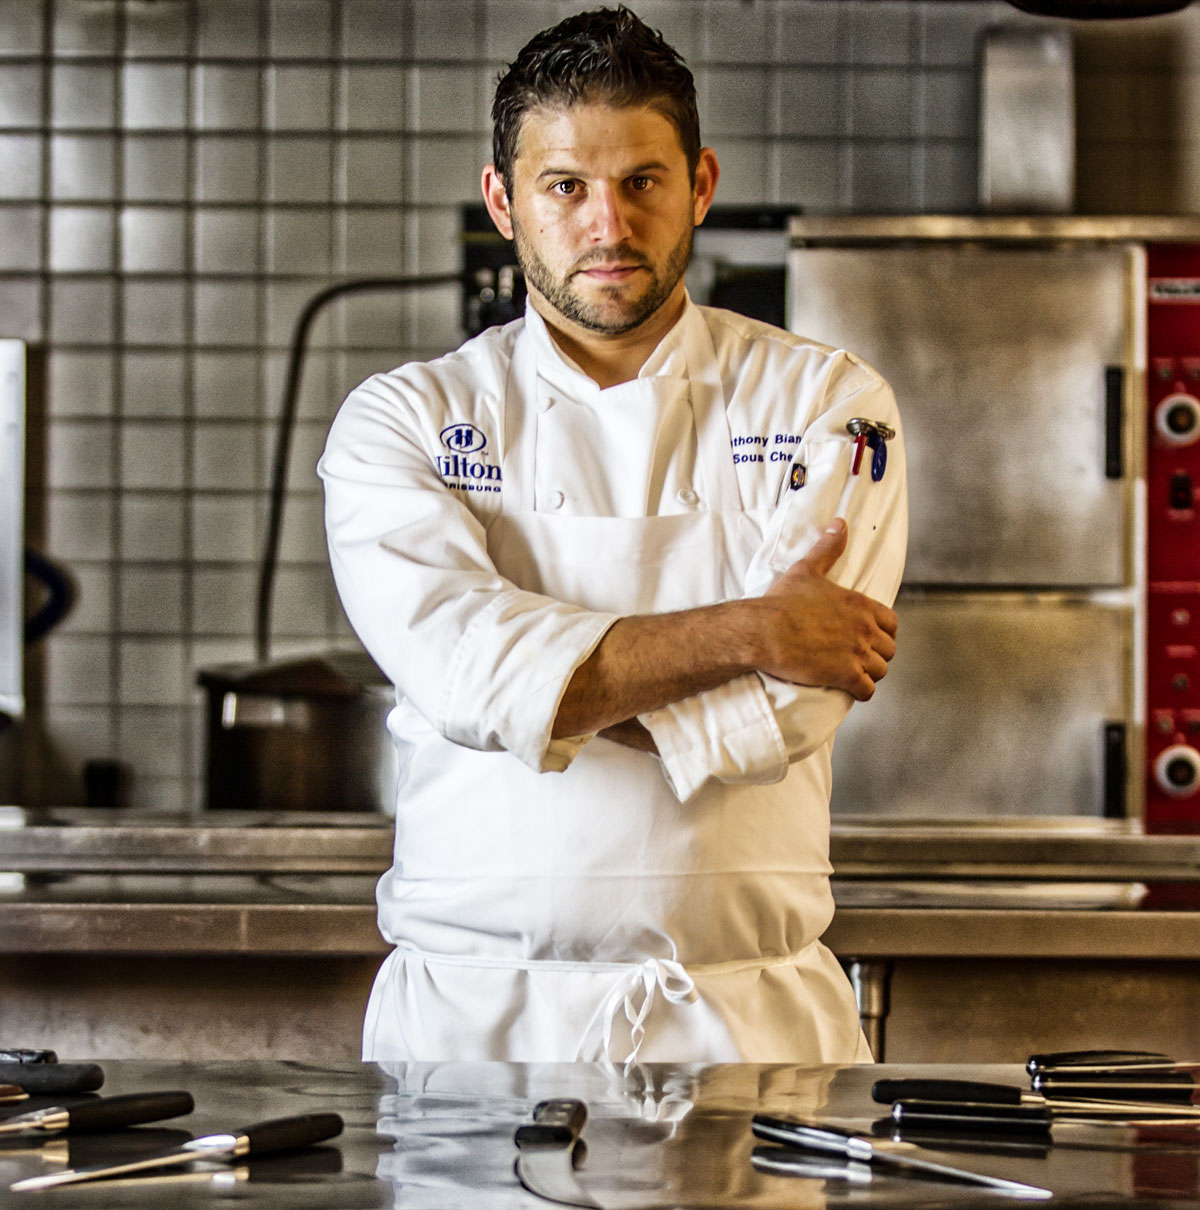 Hilton Harrisburg Hotel's Executive Sous Chef, Tony Bianco